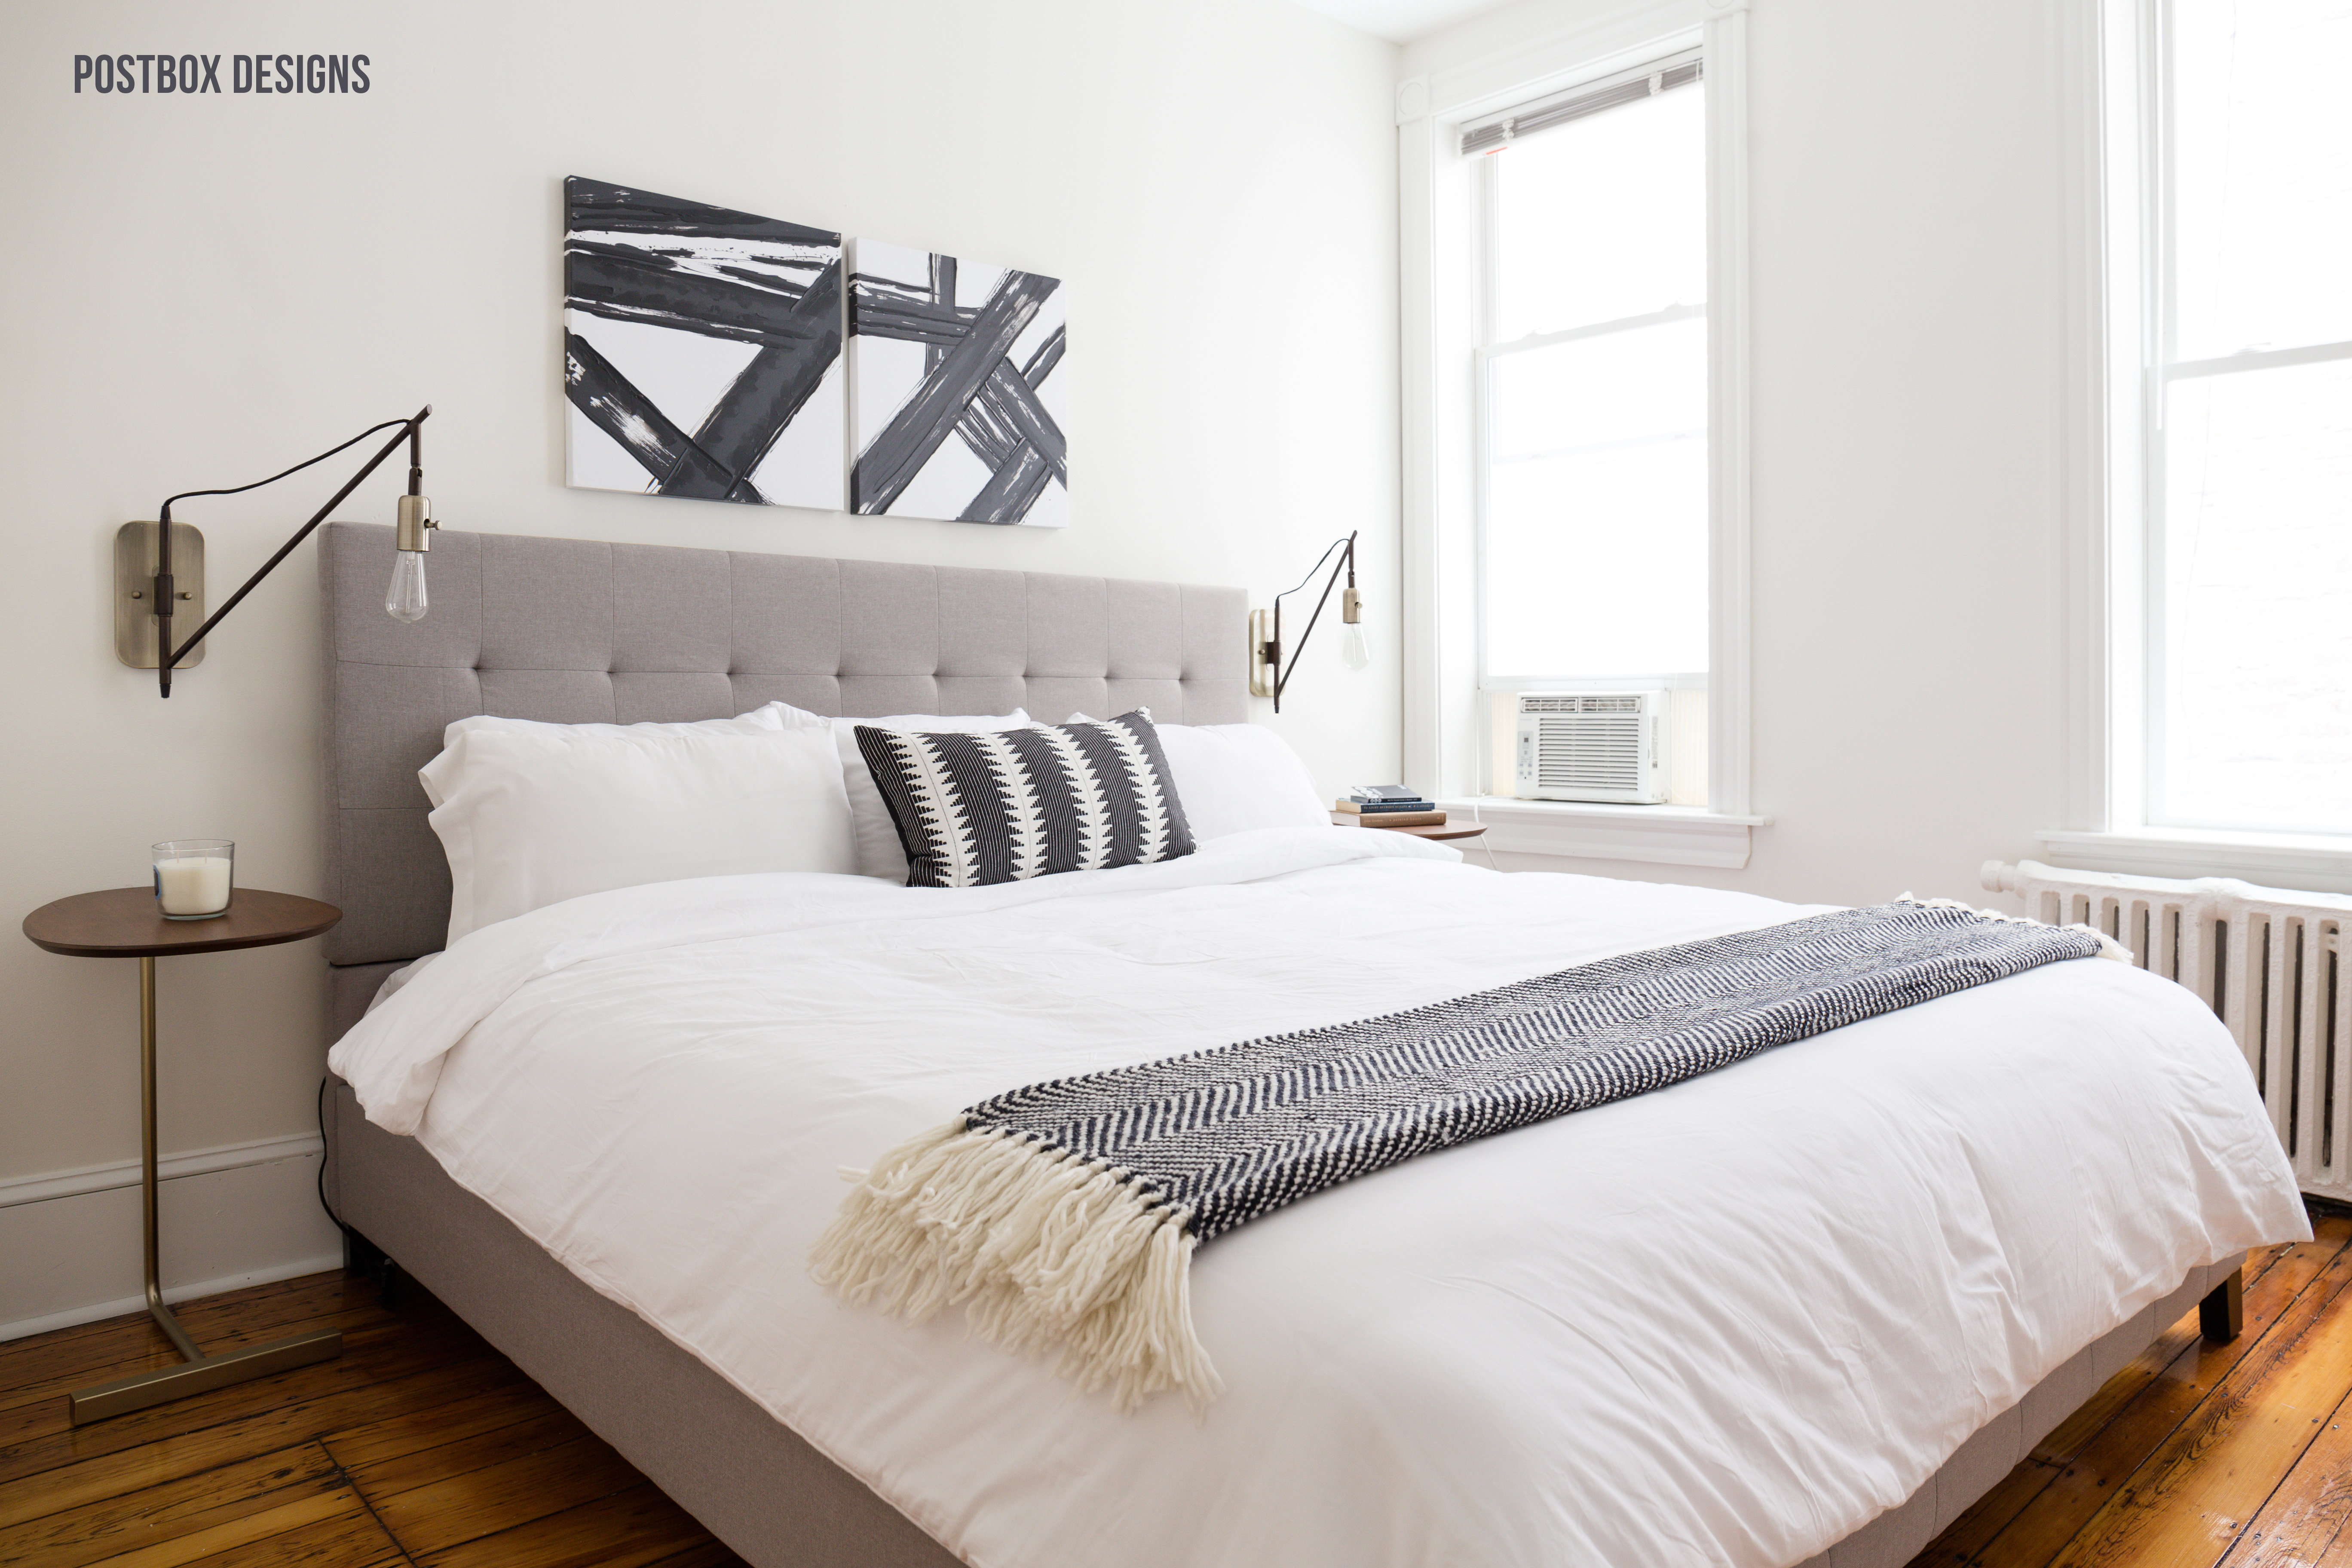 Neutral Modern Boho Bedroom Makeover Reveal: See the Before and